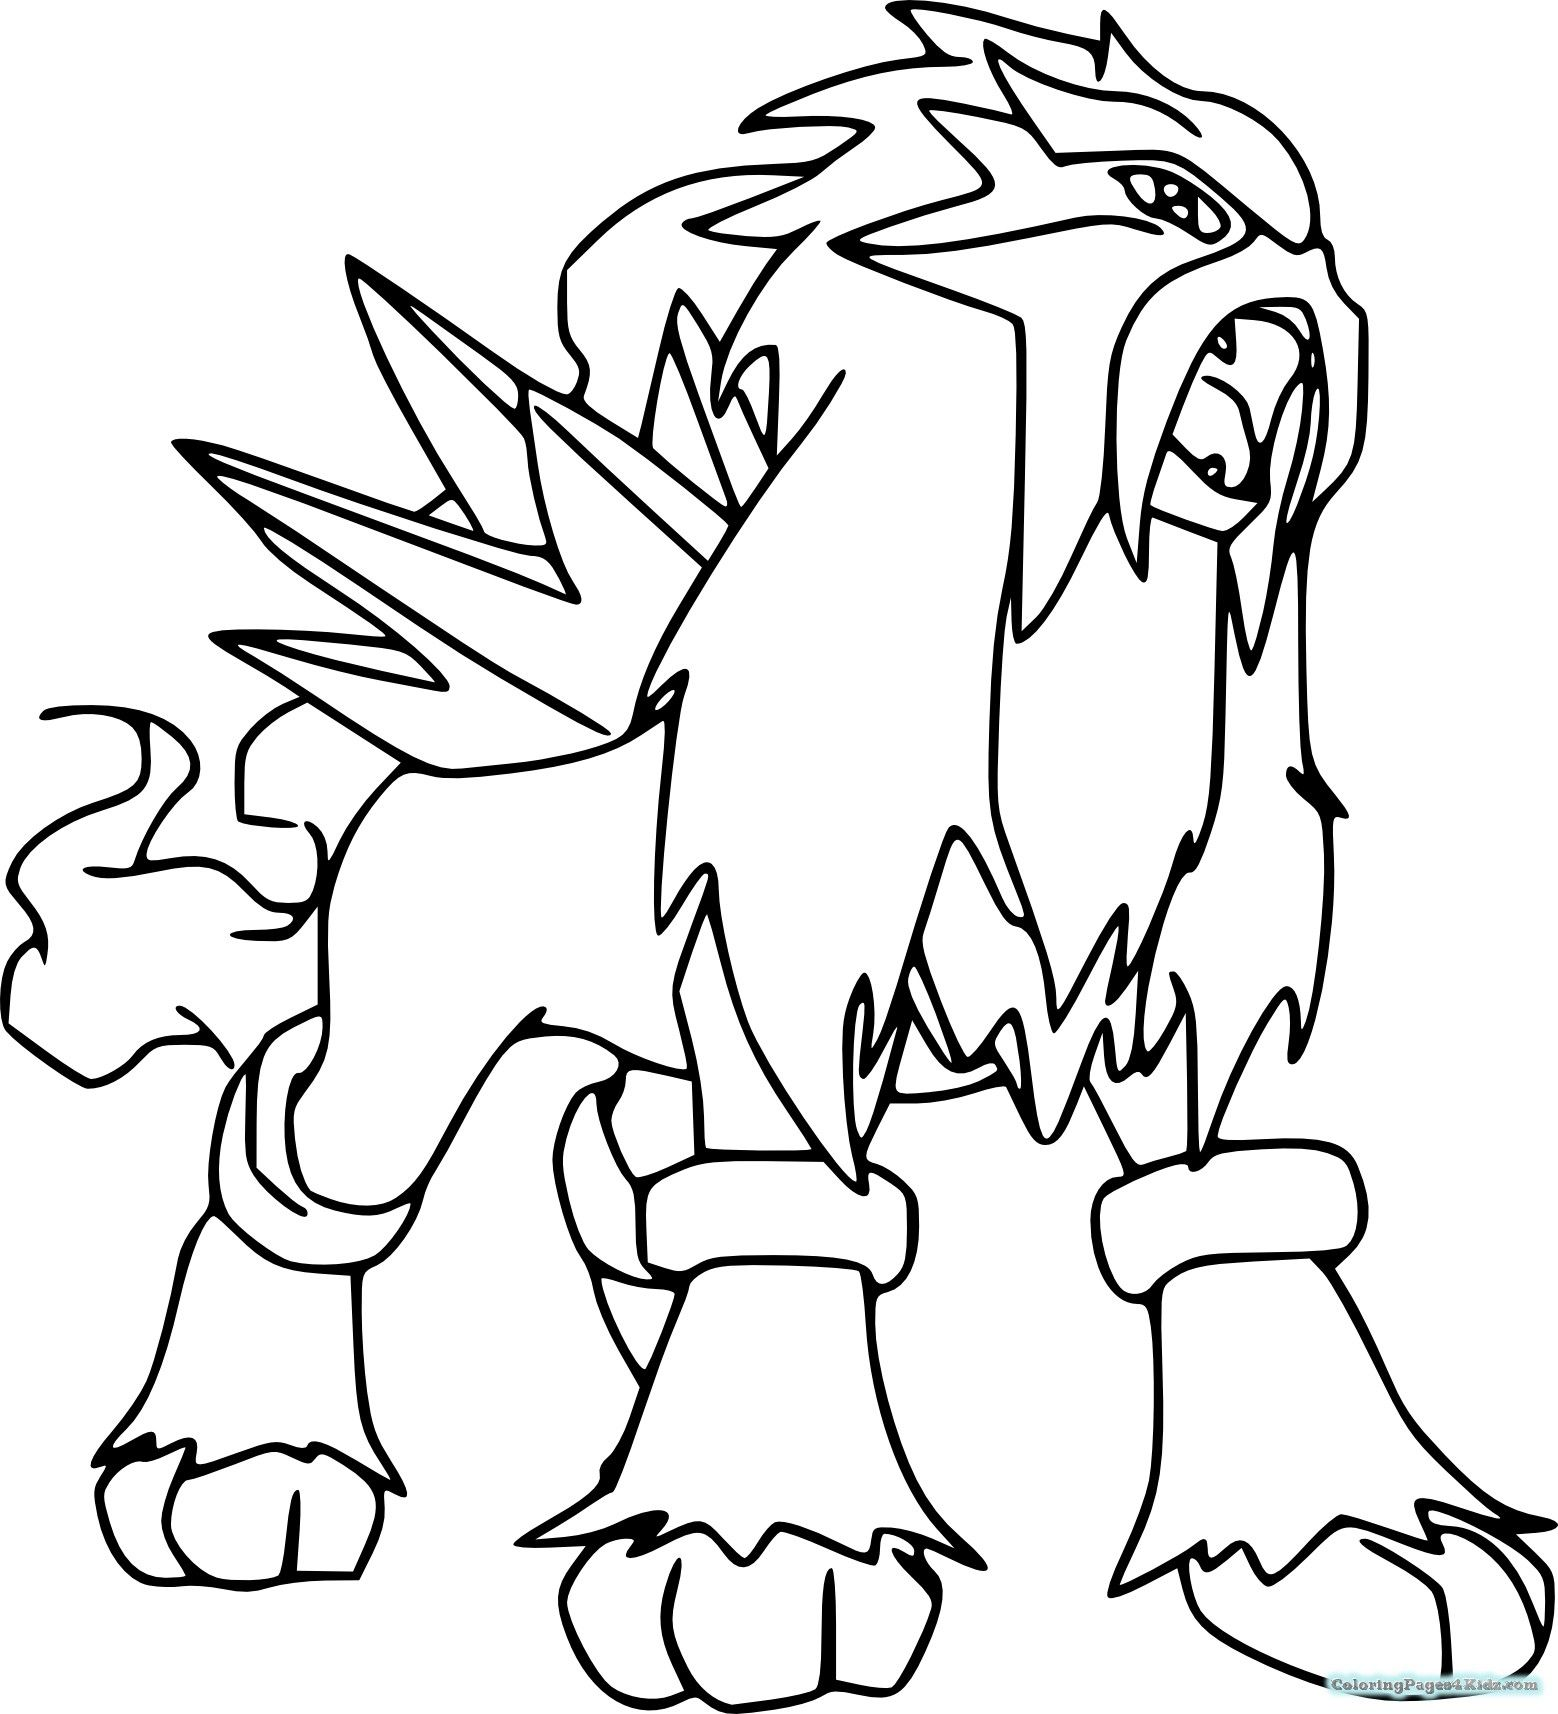 Legendary Pokemon Coloring Pages Free Http Www Wallpaperartdesignhd Us Legendary Pokemon Coloring Pa Pokemon Coloring Pages Pokemon Coloring Pokemon Drawings